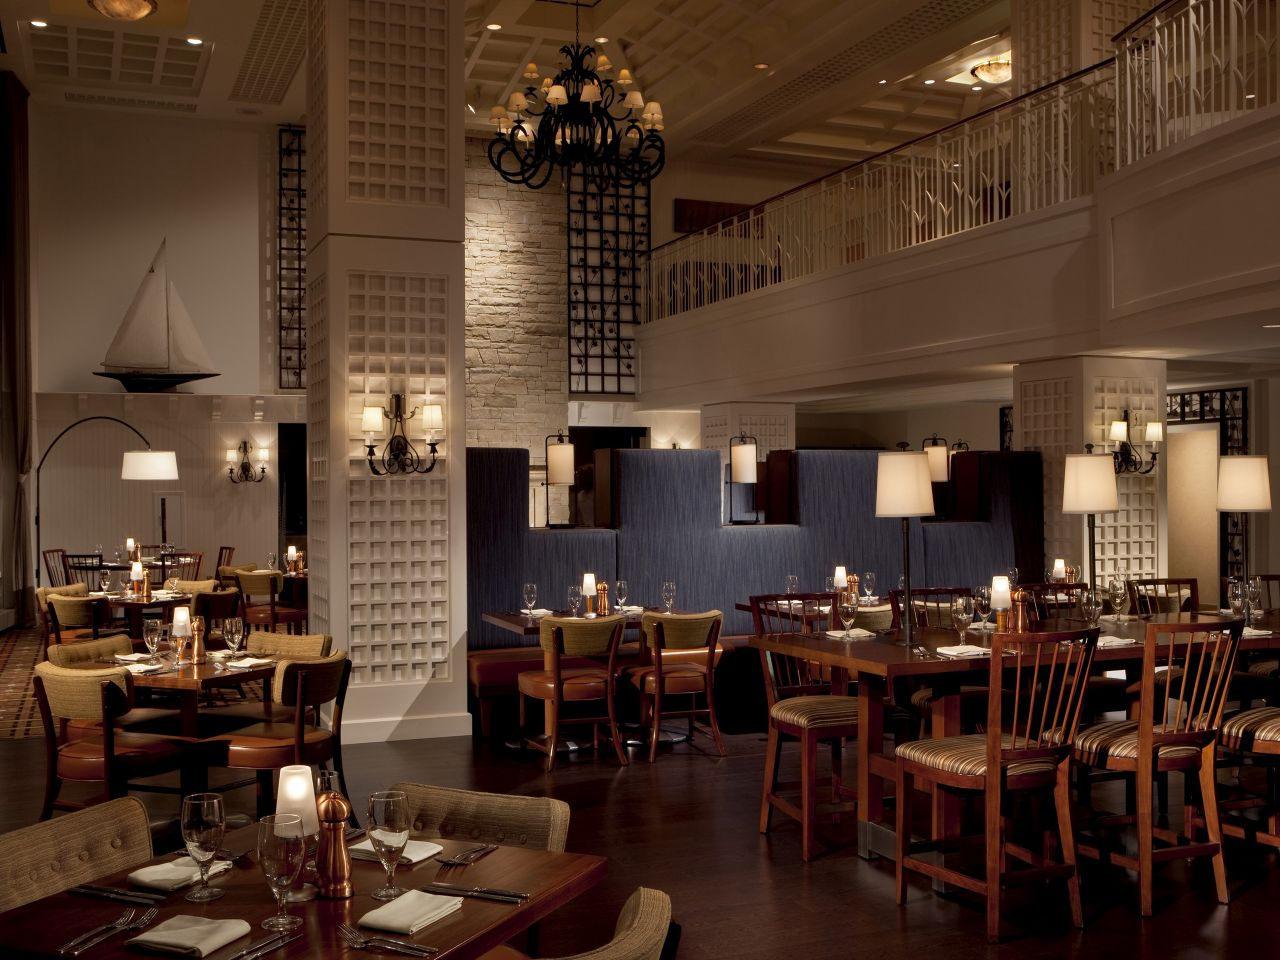 Chesapeake Bay Restaurant Hyatt Regency Chesapeake